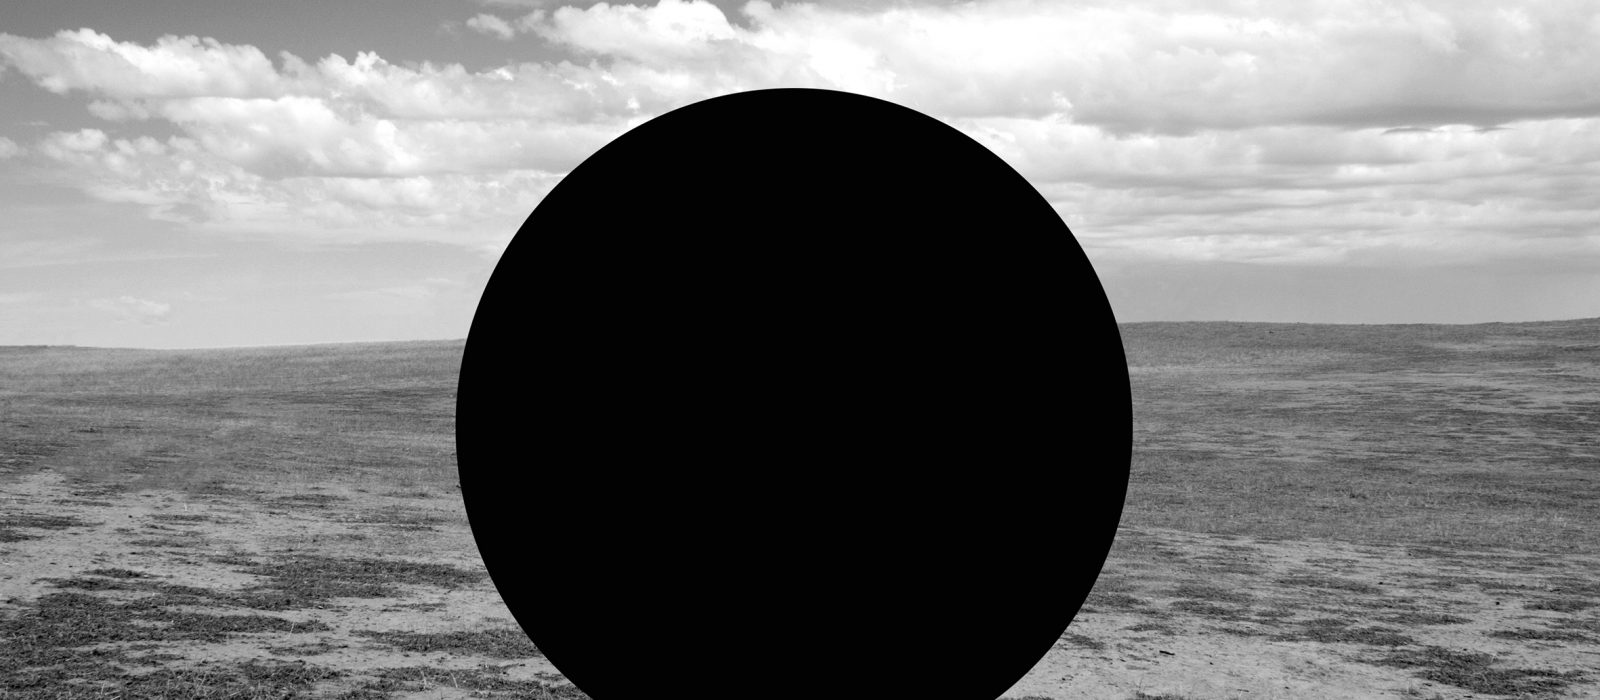 James Tylor, Vanished From an Untouched Landscape 12, 2018 Inkjet print on hahnemuhle paper with hole removed to a black velvet void , 50x50cm